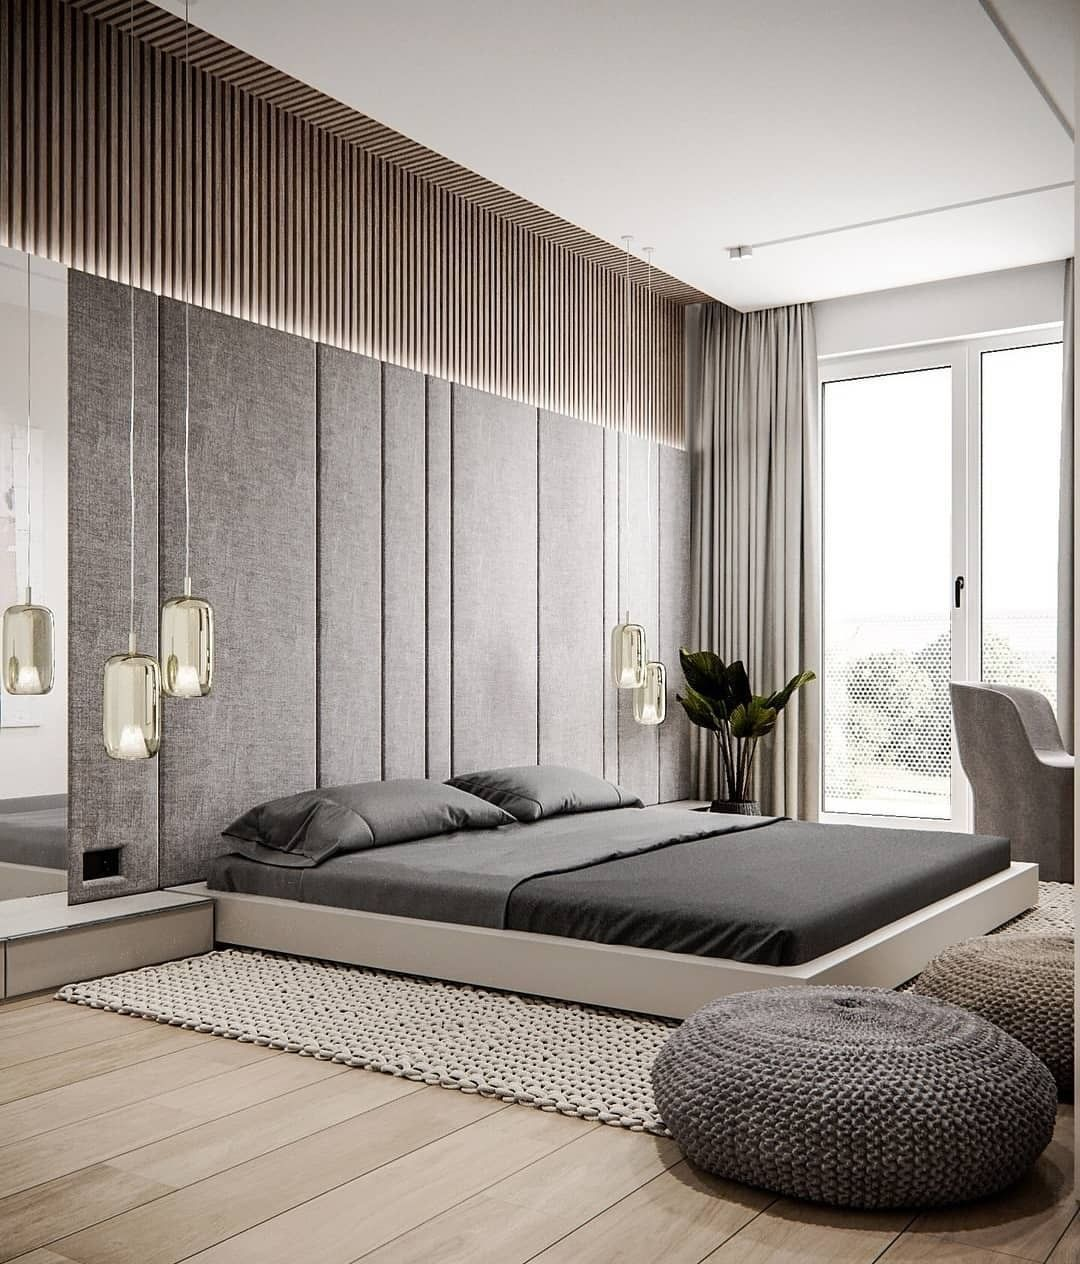 Like Platform Bed Pendant Lighting This Style The Most Prefer White Bed Linens In Genera Modern Master Bedroom Design Bedroom Design Modern Master Bedroom